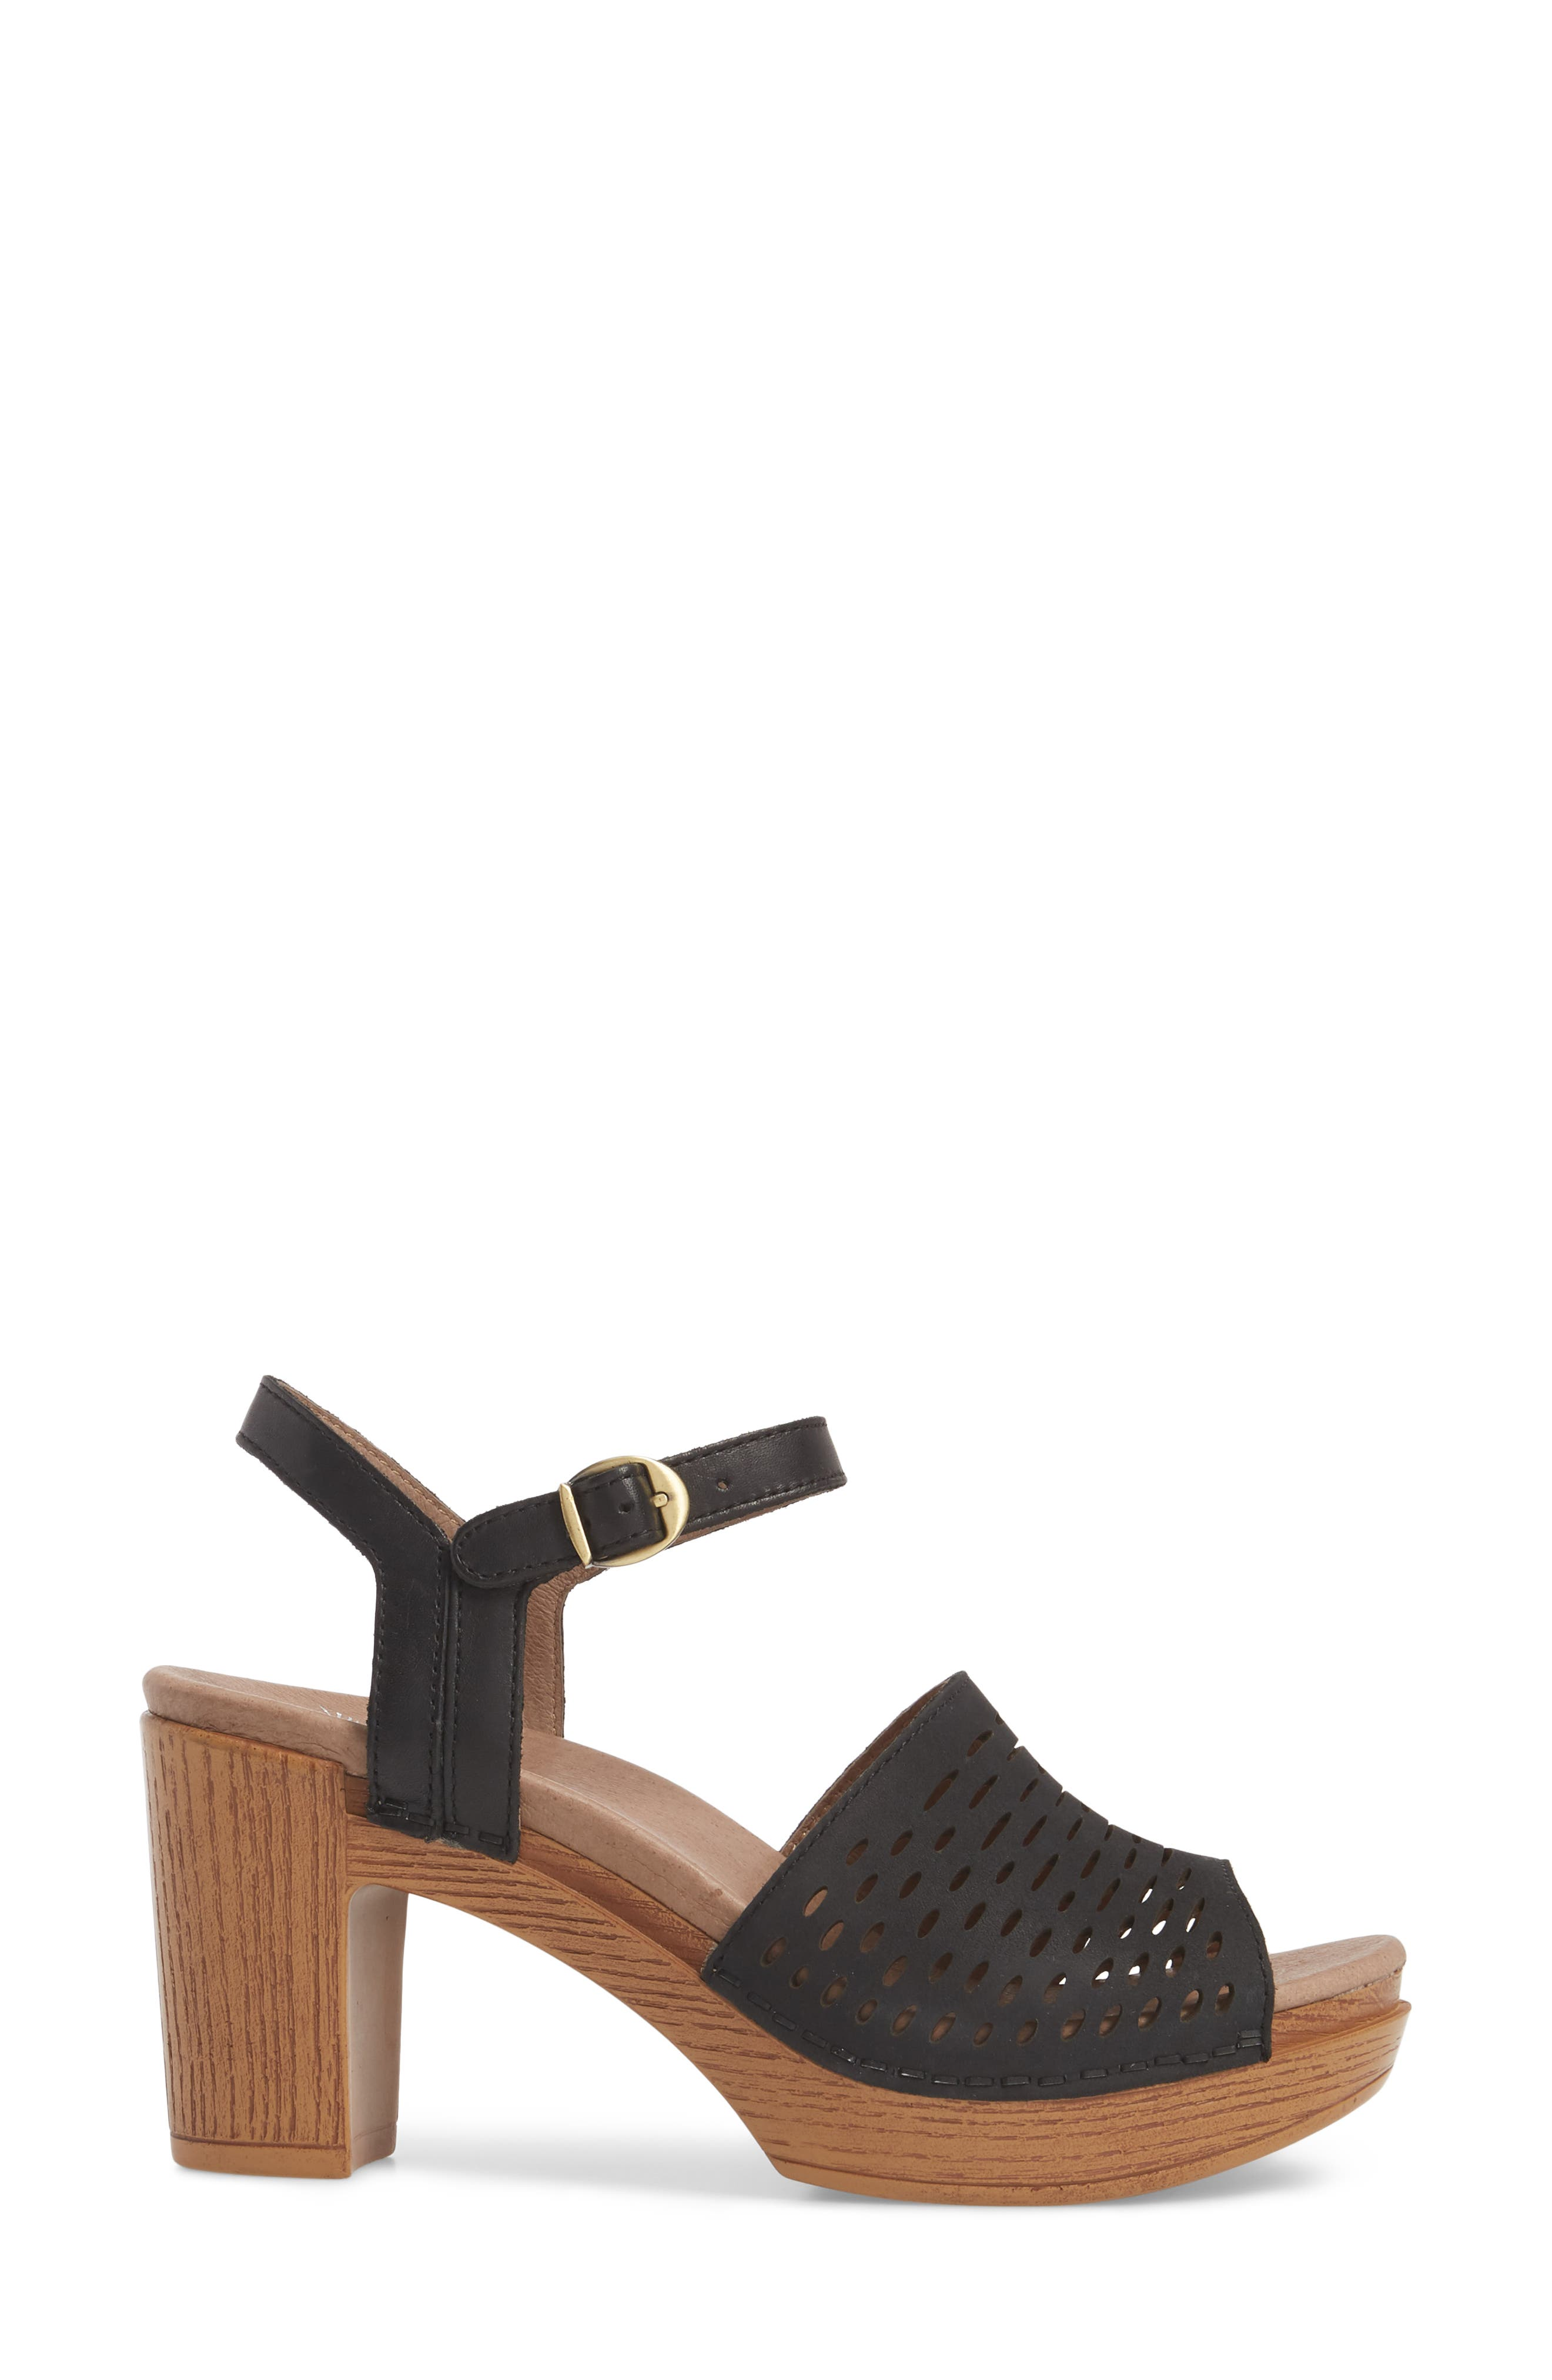 Denita Block Heel Sandal,                             Alternate thumbnail 3, color,                             Black Milled Nubuck Leather